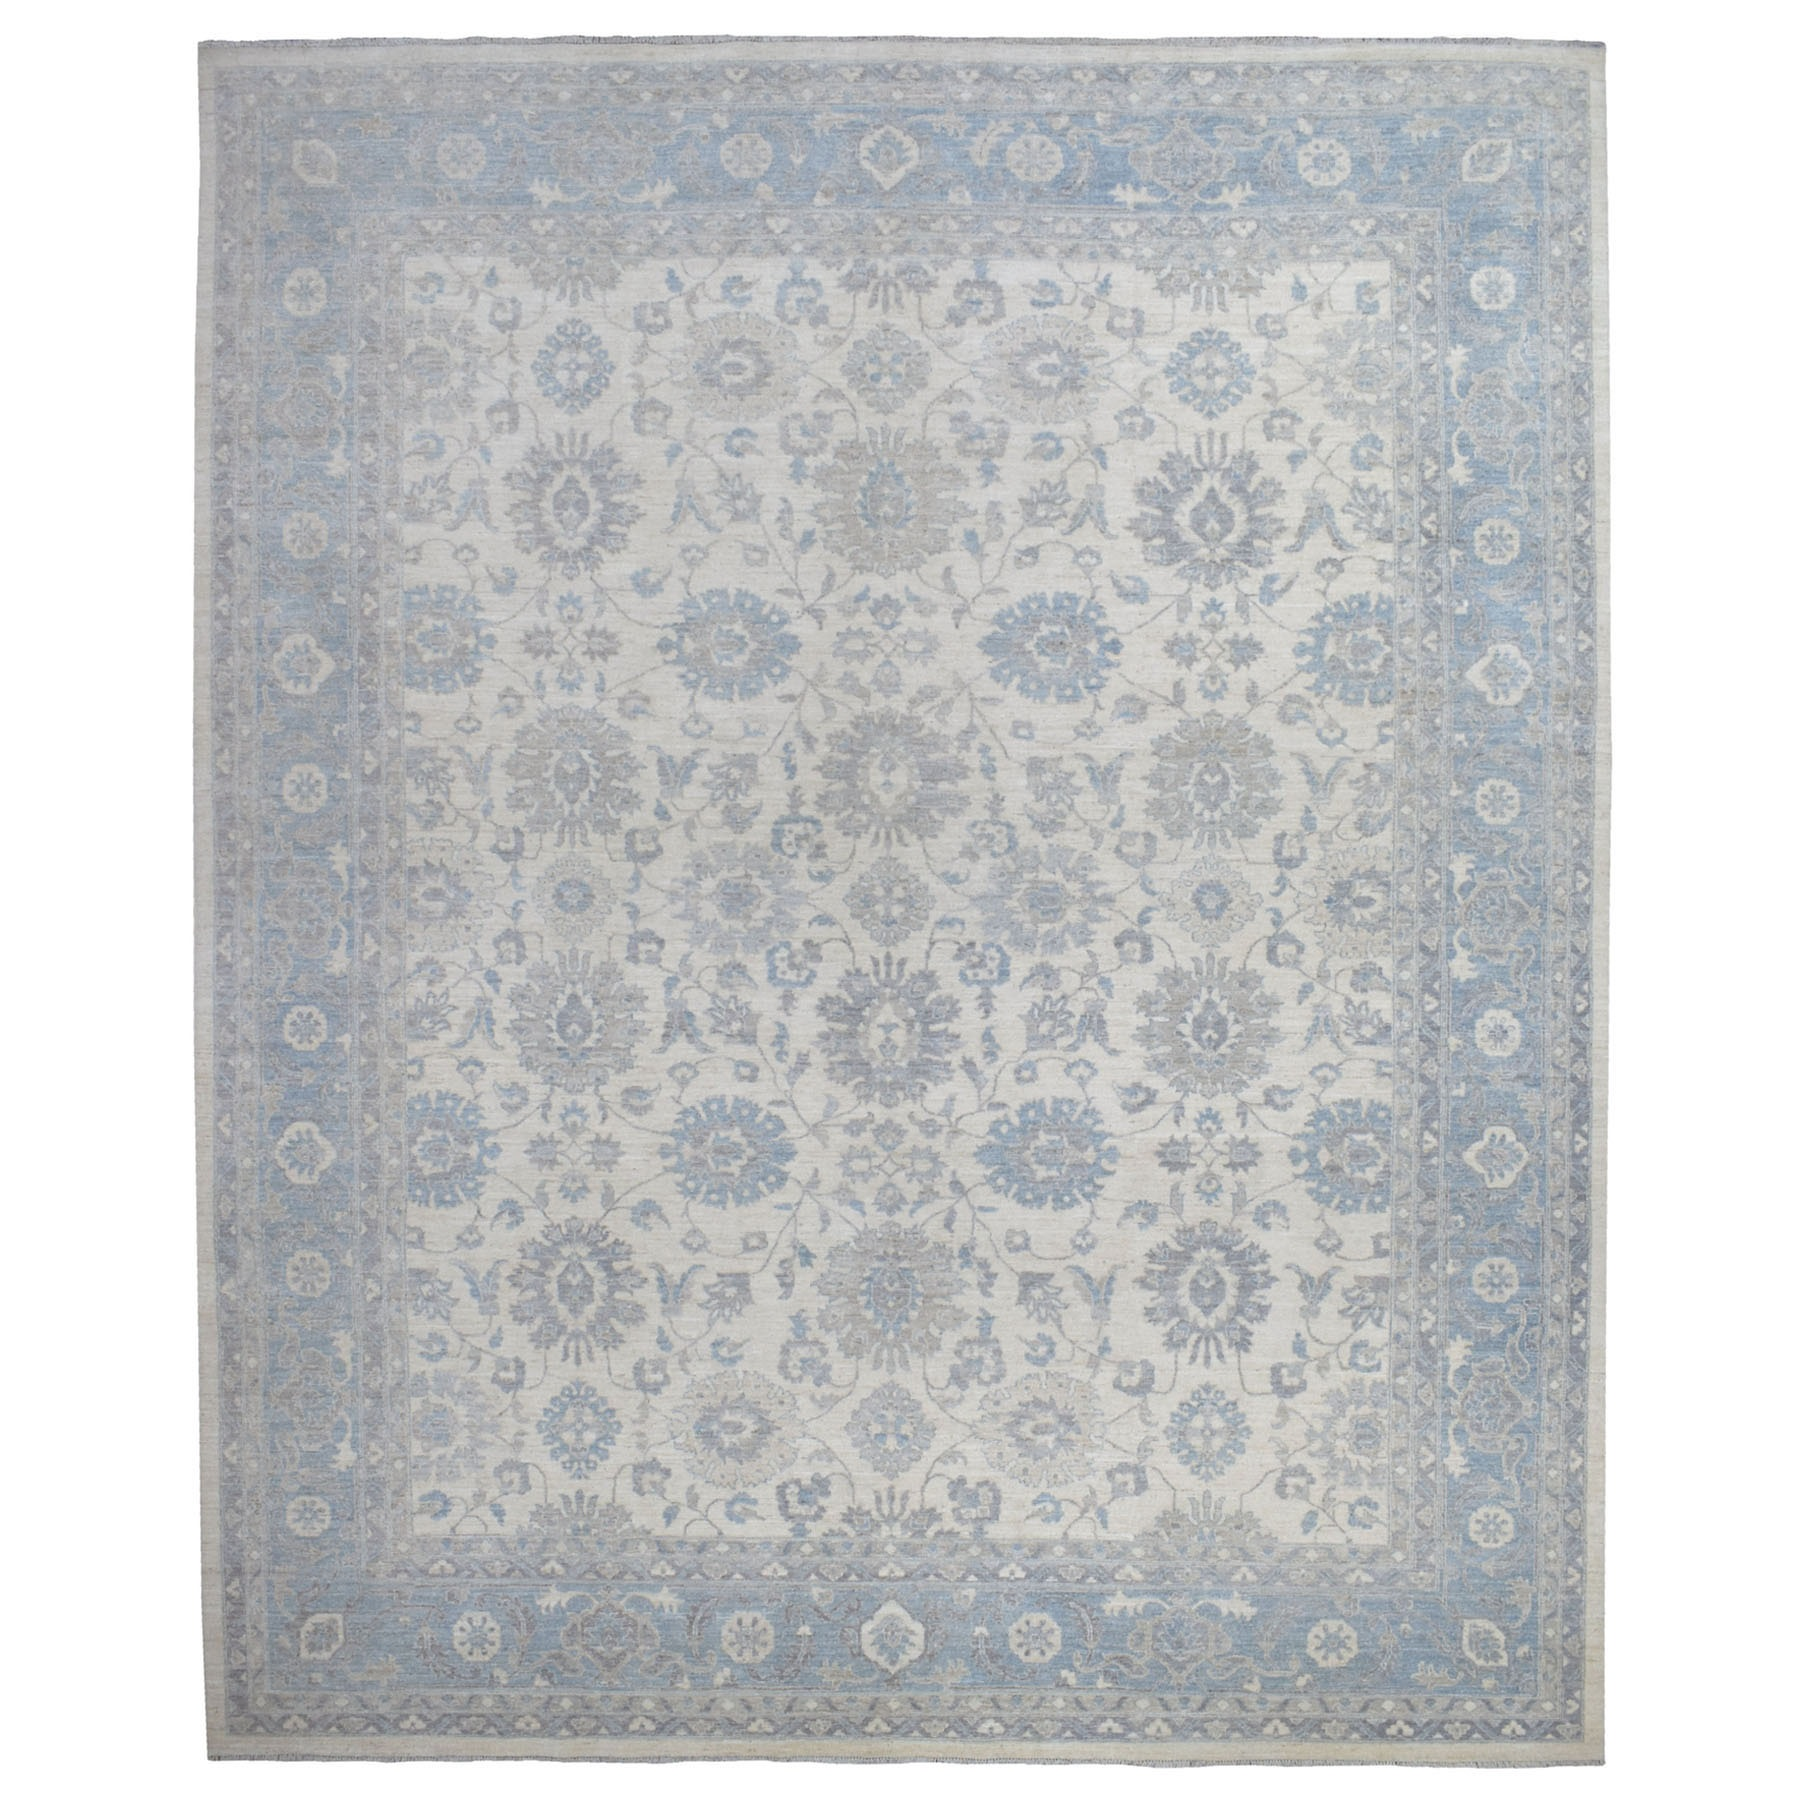 Agra And Turkish Collection Hand Knotted Ivory Rug No: 1111528